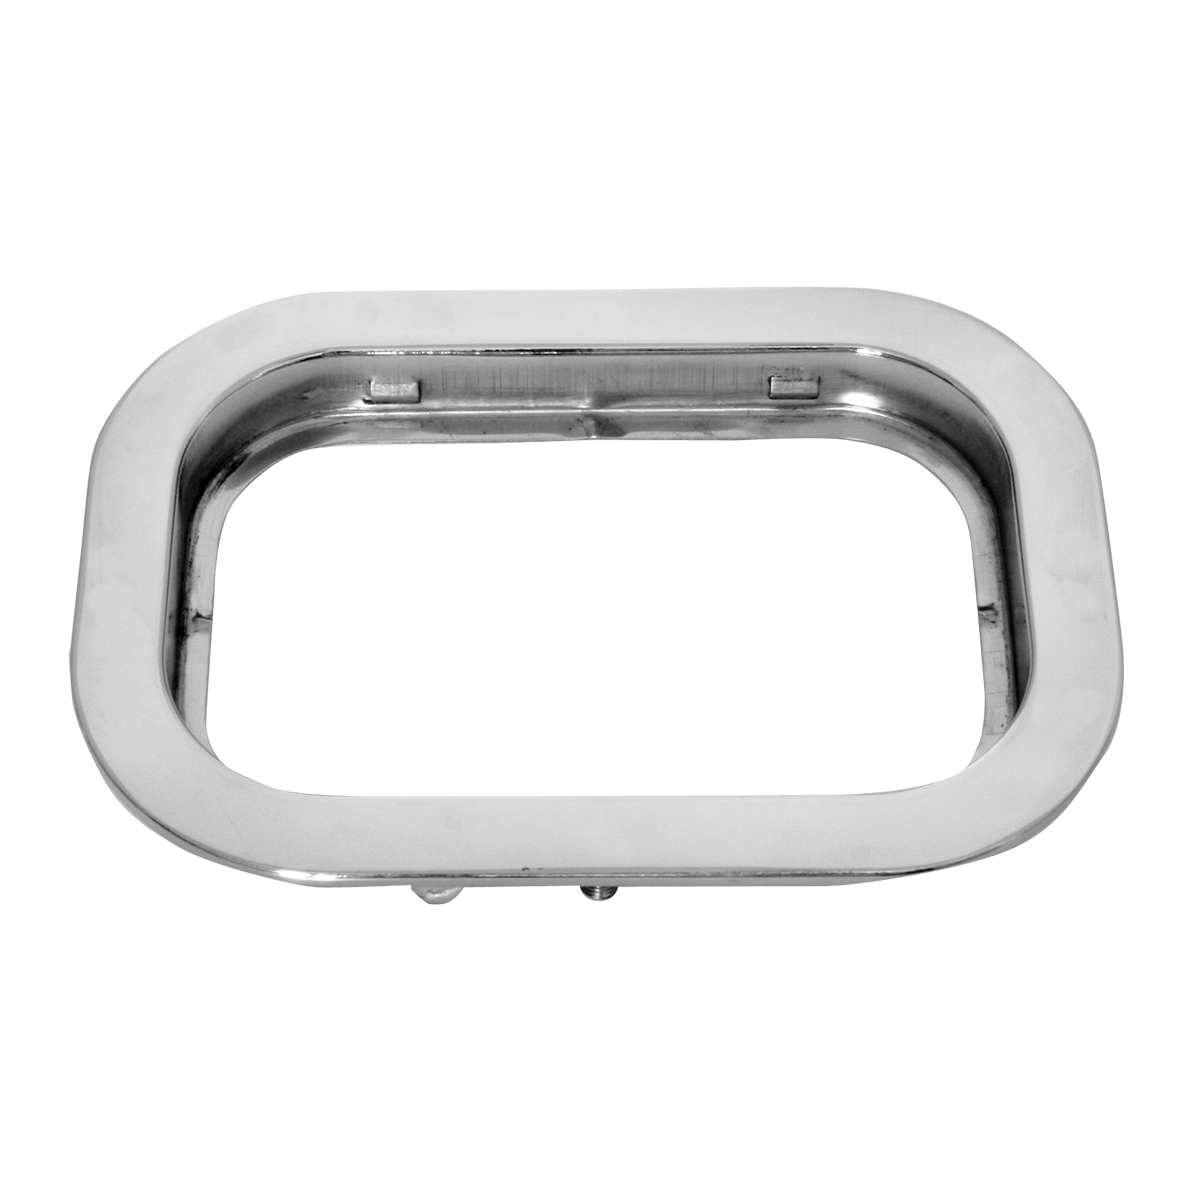 "77019 Stainless Steel Flange Mount Bezel with Hidden Studs for 5.25"" Large Rectangular Light"